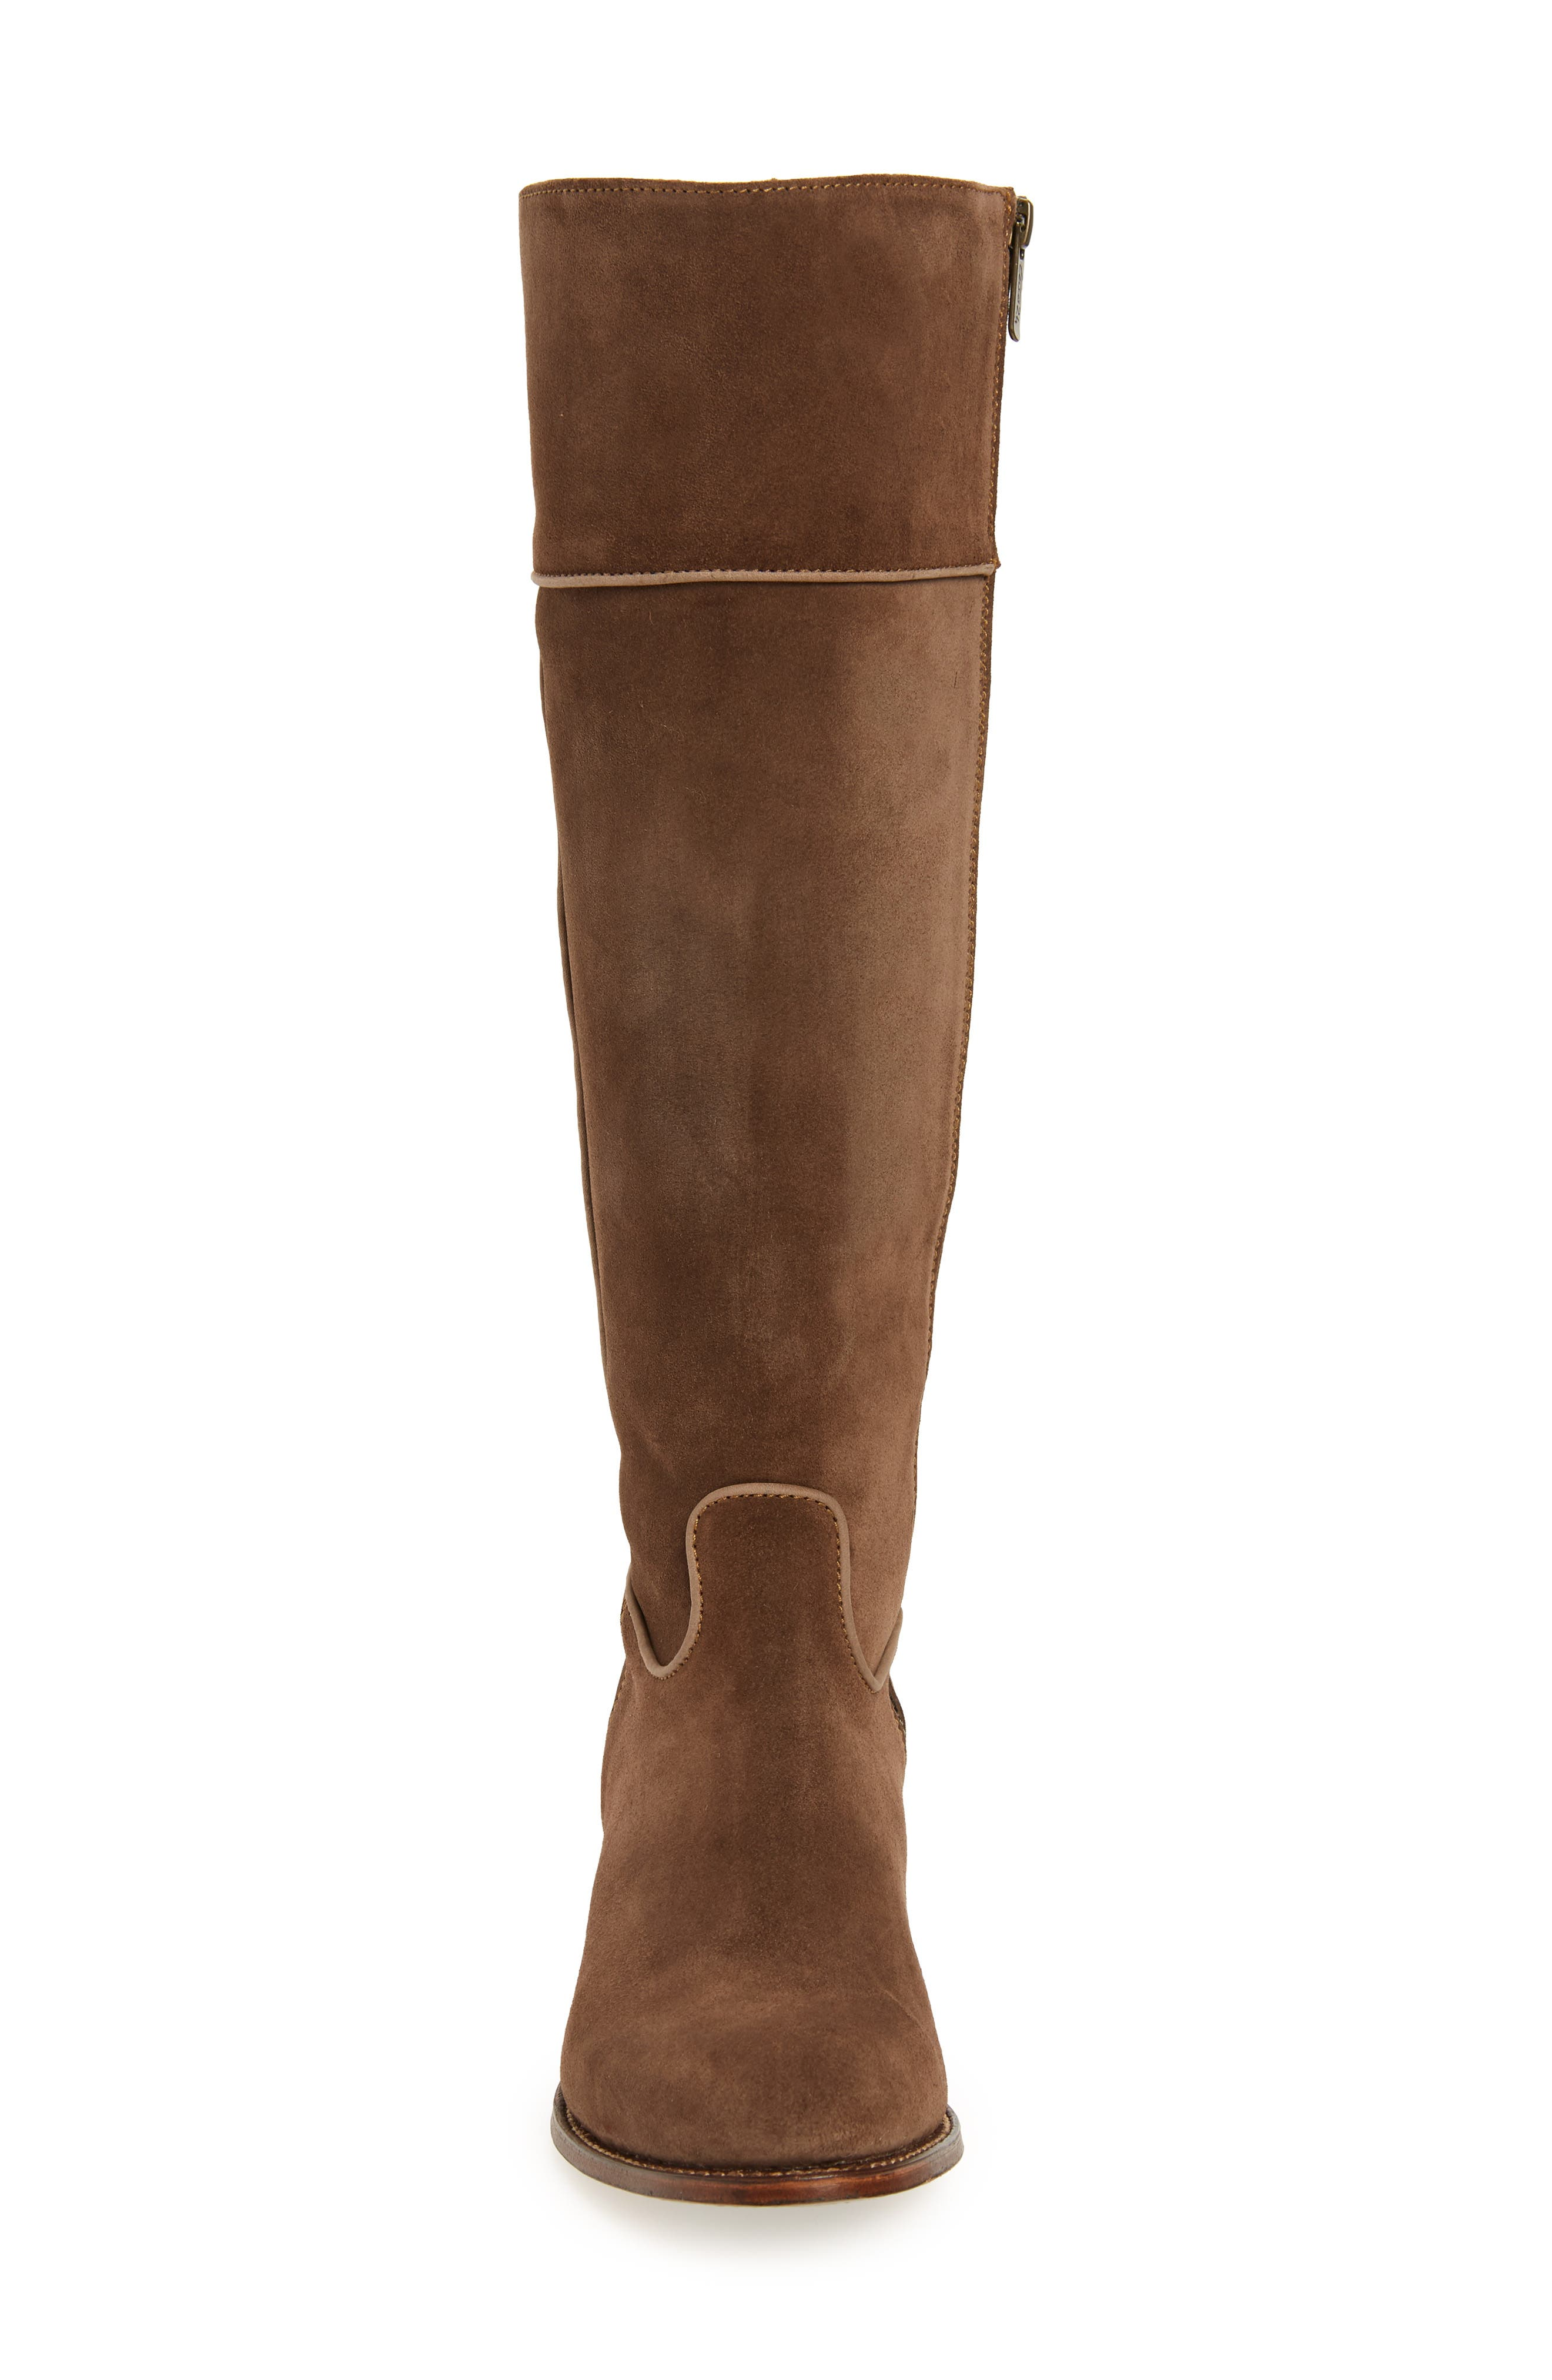 Two24 by Ariat Barcelona Boot,                             Alternate thumbnail 4, color,                             200